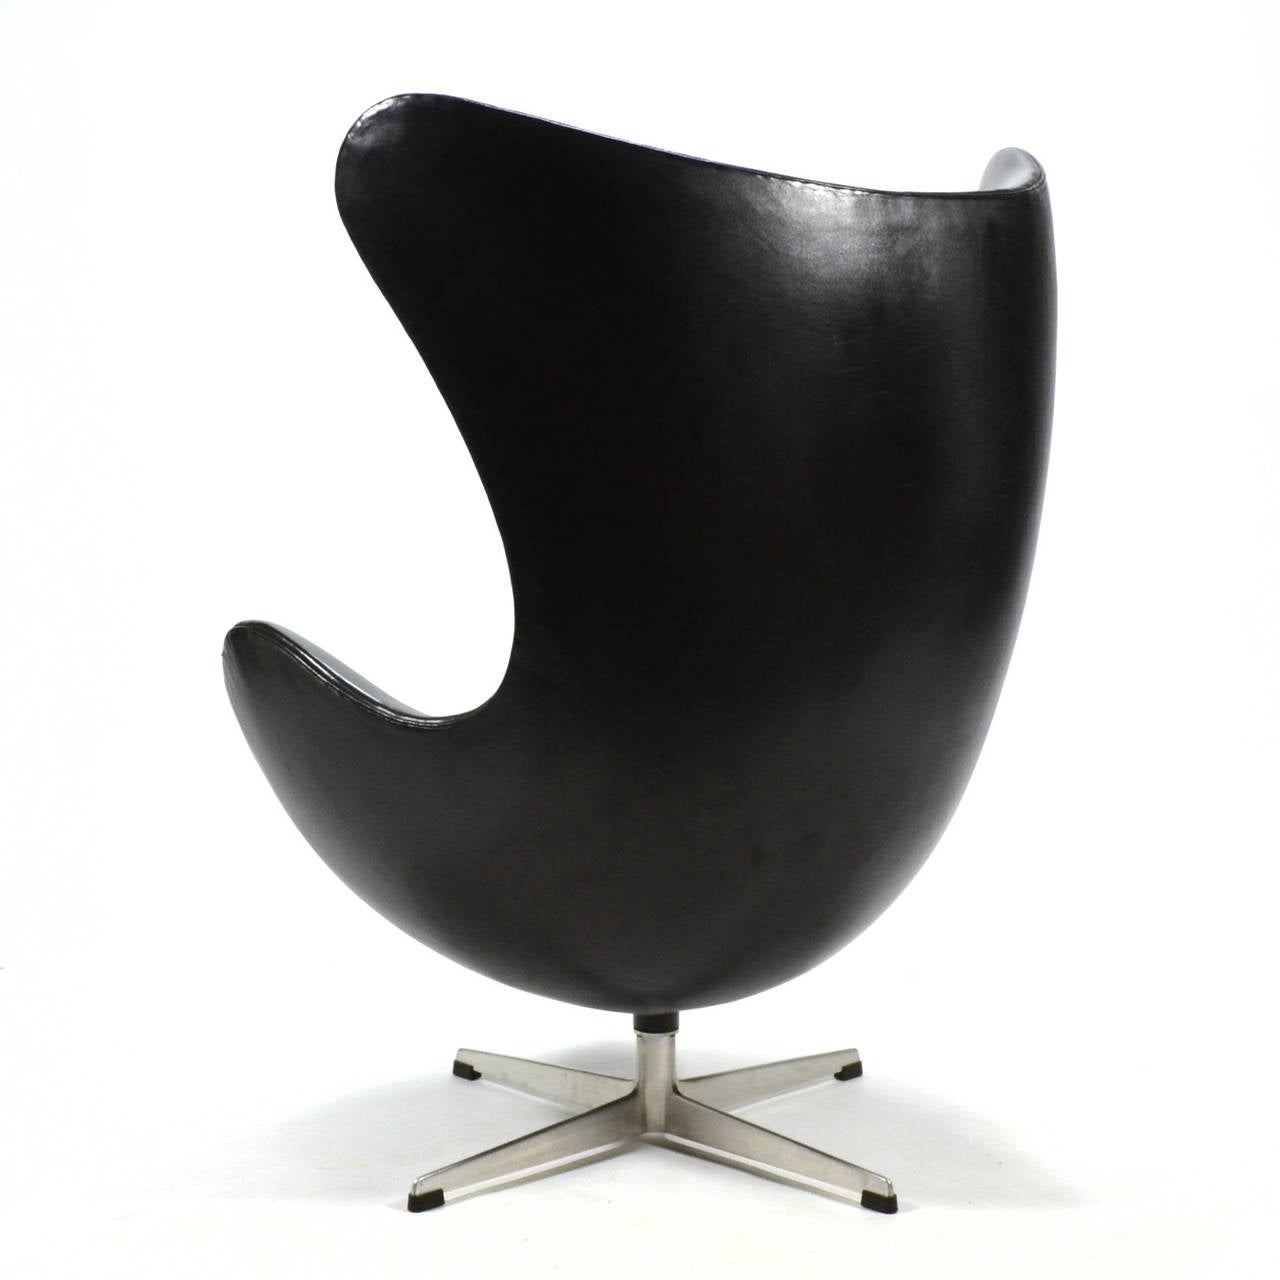 arne jacobsen early egg chair in original black leather for sale at 1stdibs. Black Bedroom Furniture Sets. Home Design Ideas